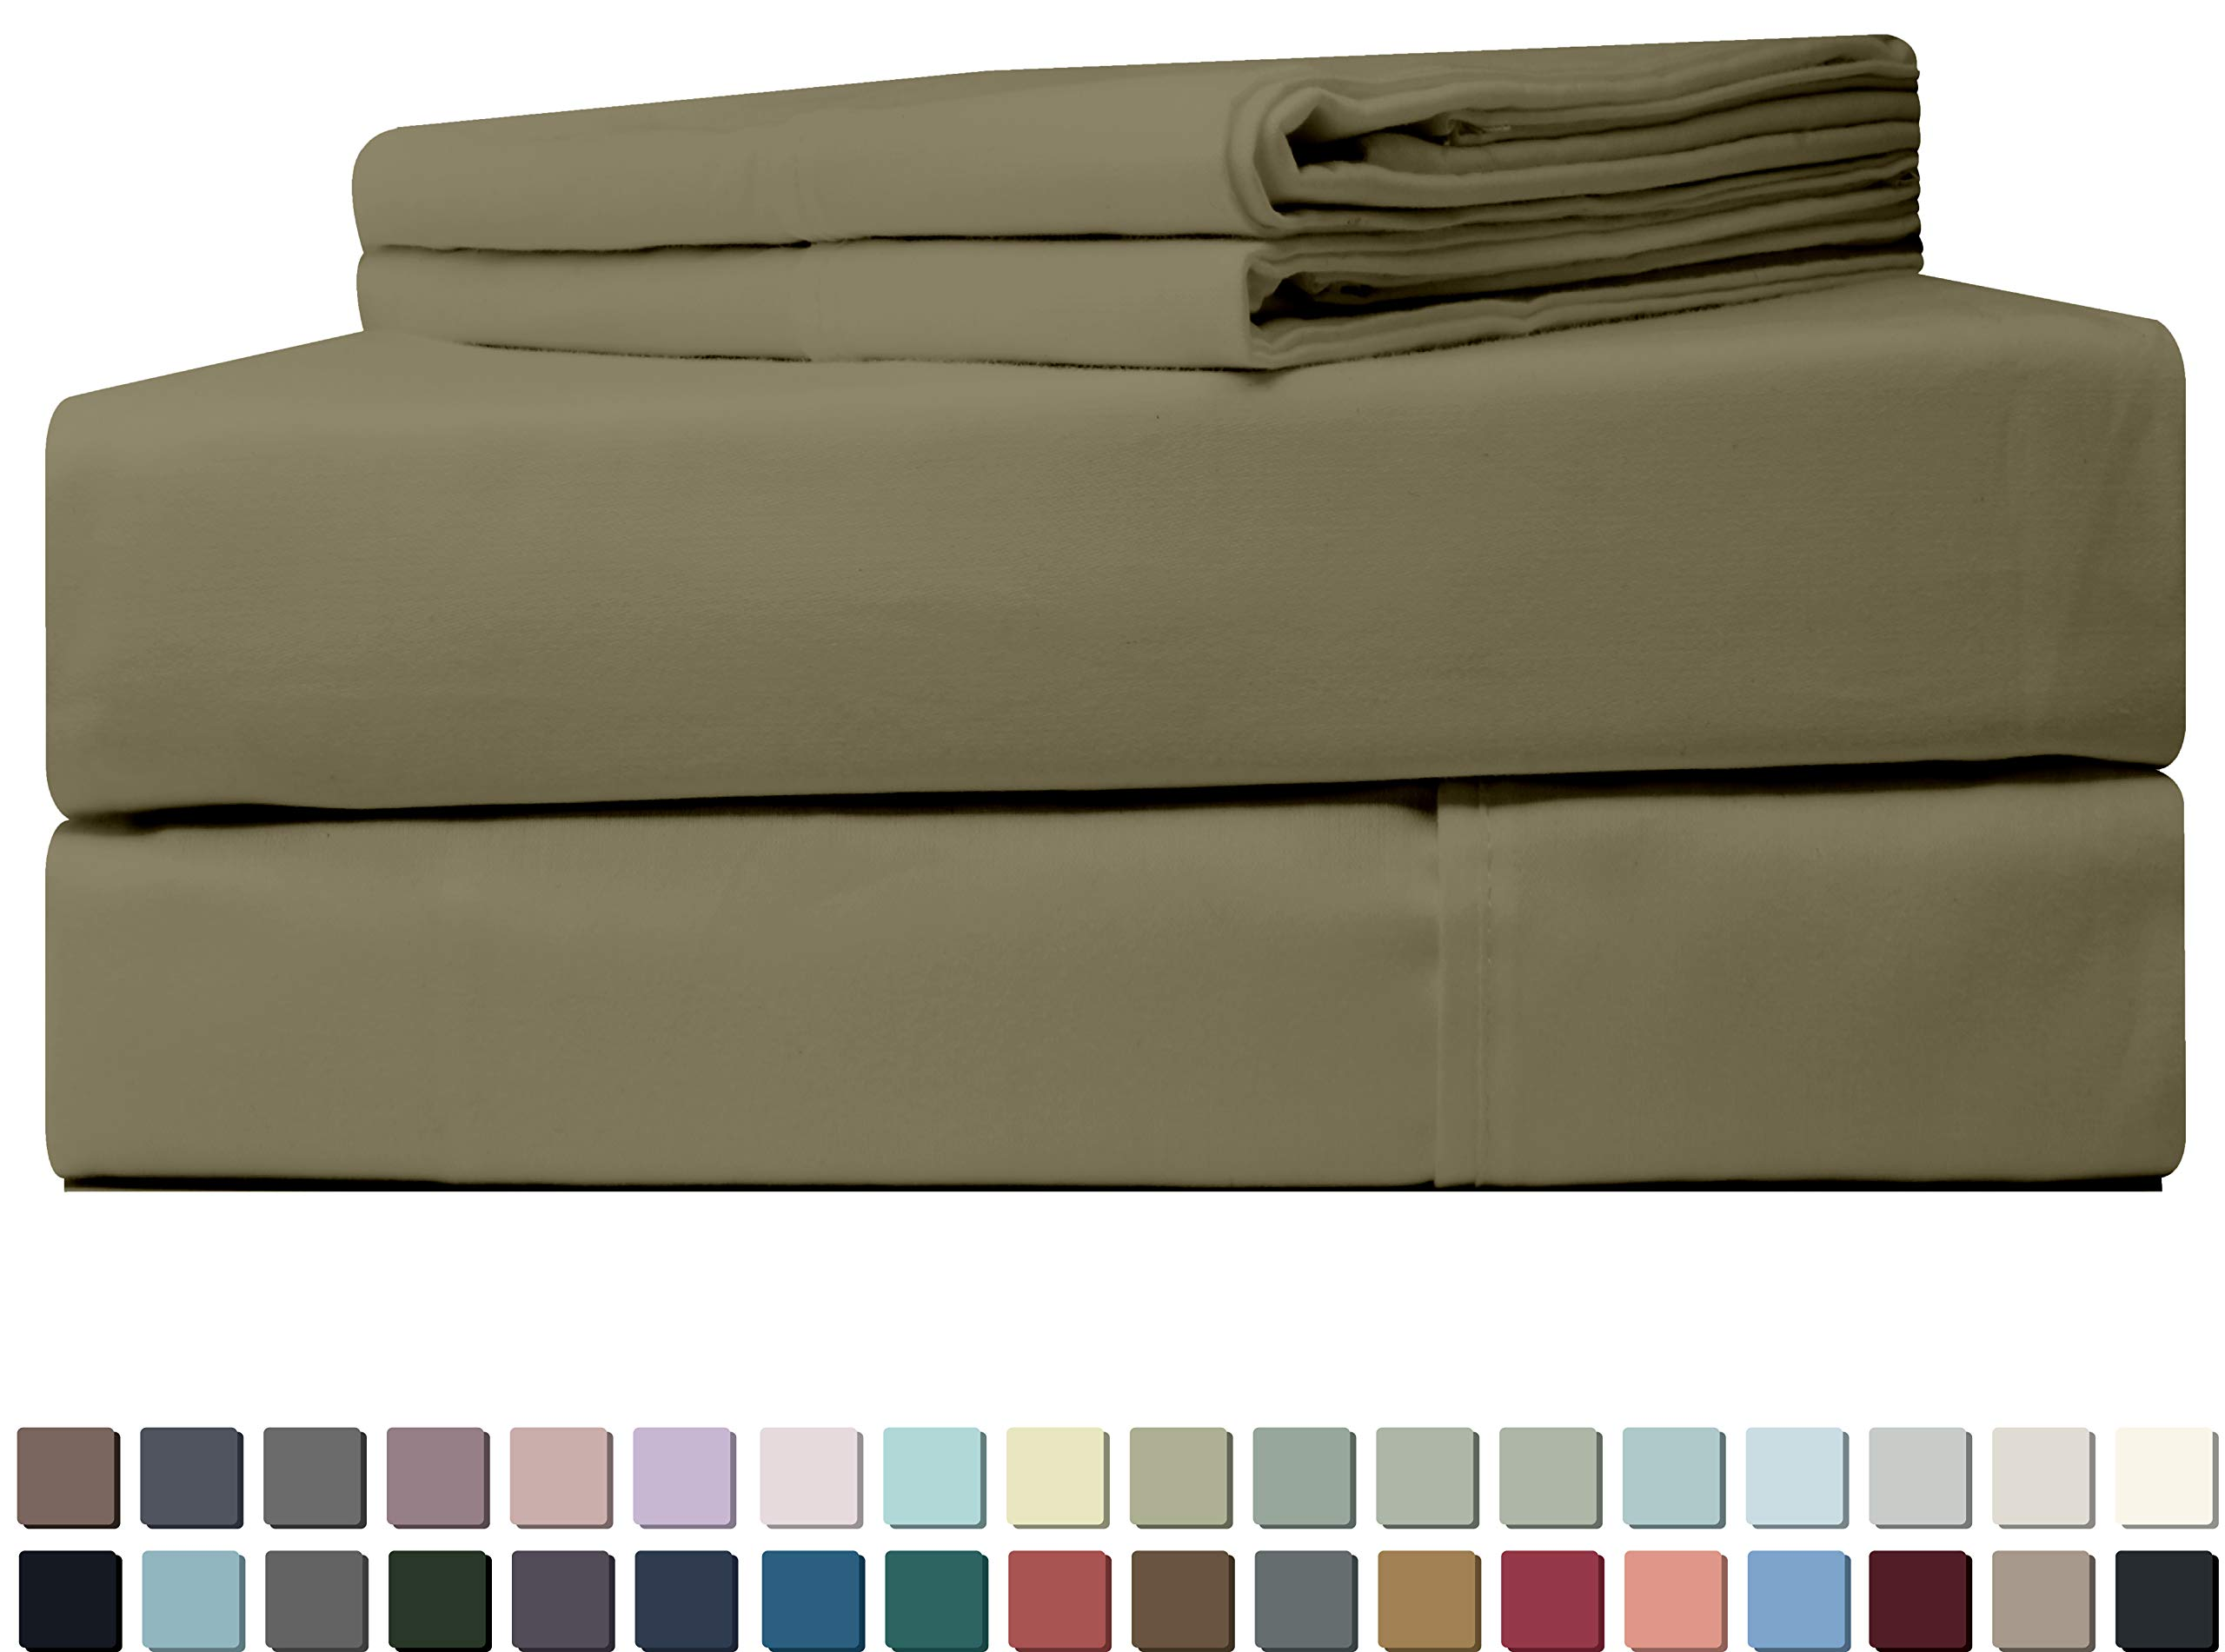 Five Elements 600-Thread-Count 100% Egyptian Pure Cotton Bed Sheet Set Beige Full, 4-Pc Extra Long-Staple Luxury Hotel Bedding, Soft Sateen Weave, Breathable, Fits Mattress Upto 18'' Deep Pocket